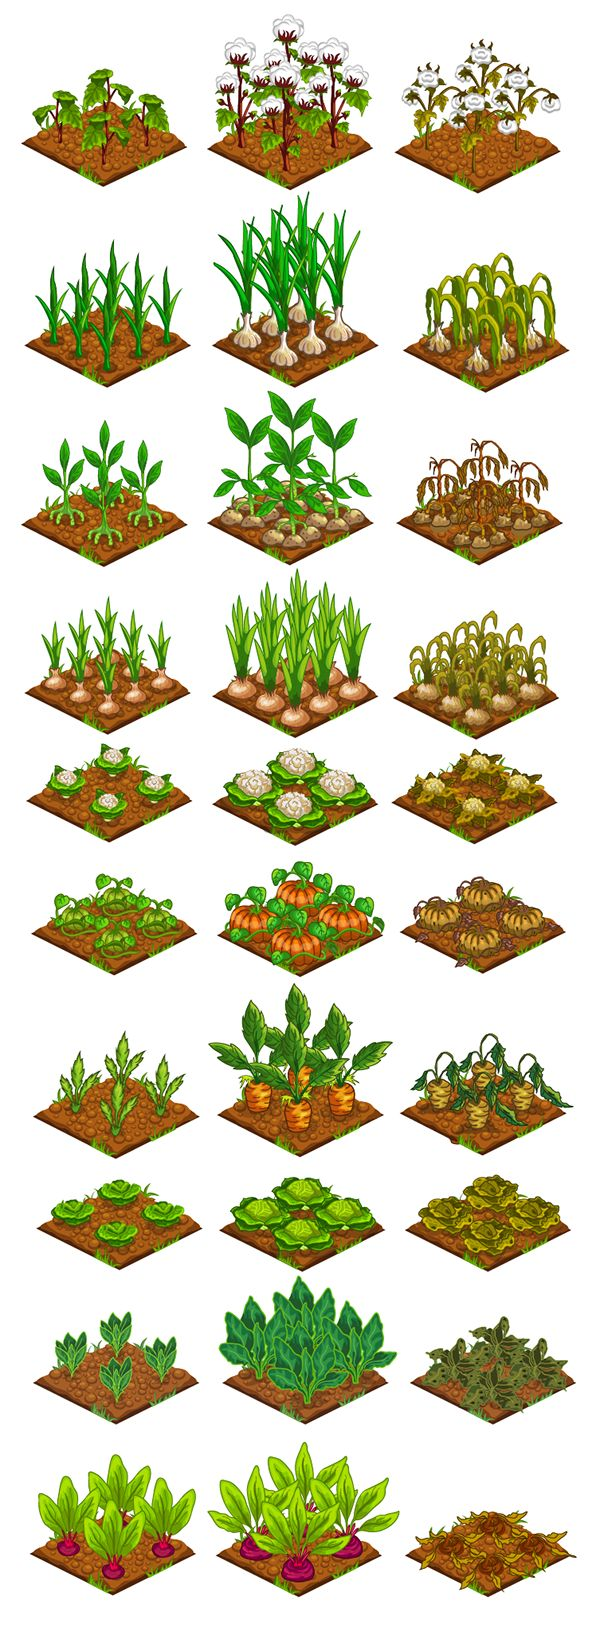 Farmster is a web based massivemultiplayer farming game